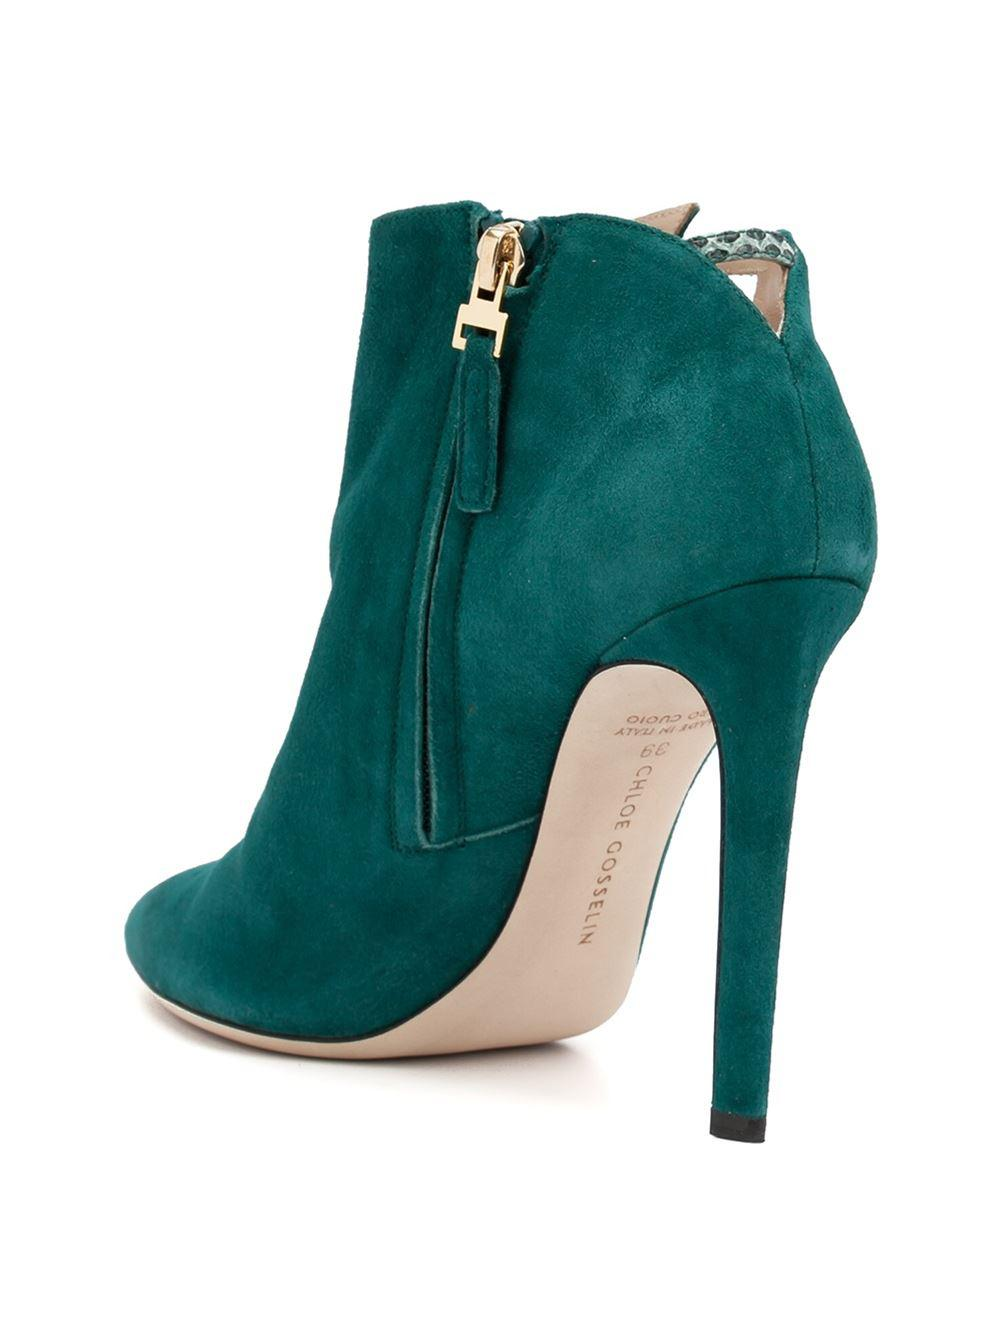 Chloe Gosselin Leather Snakeskin Effect Azalea Booties in Green